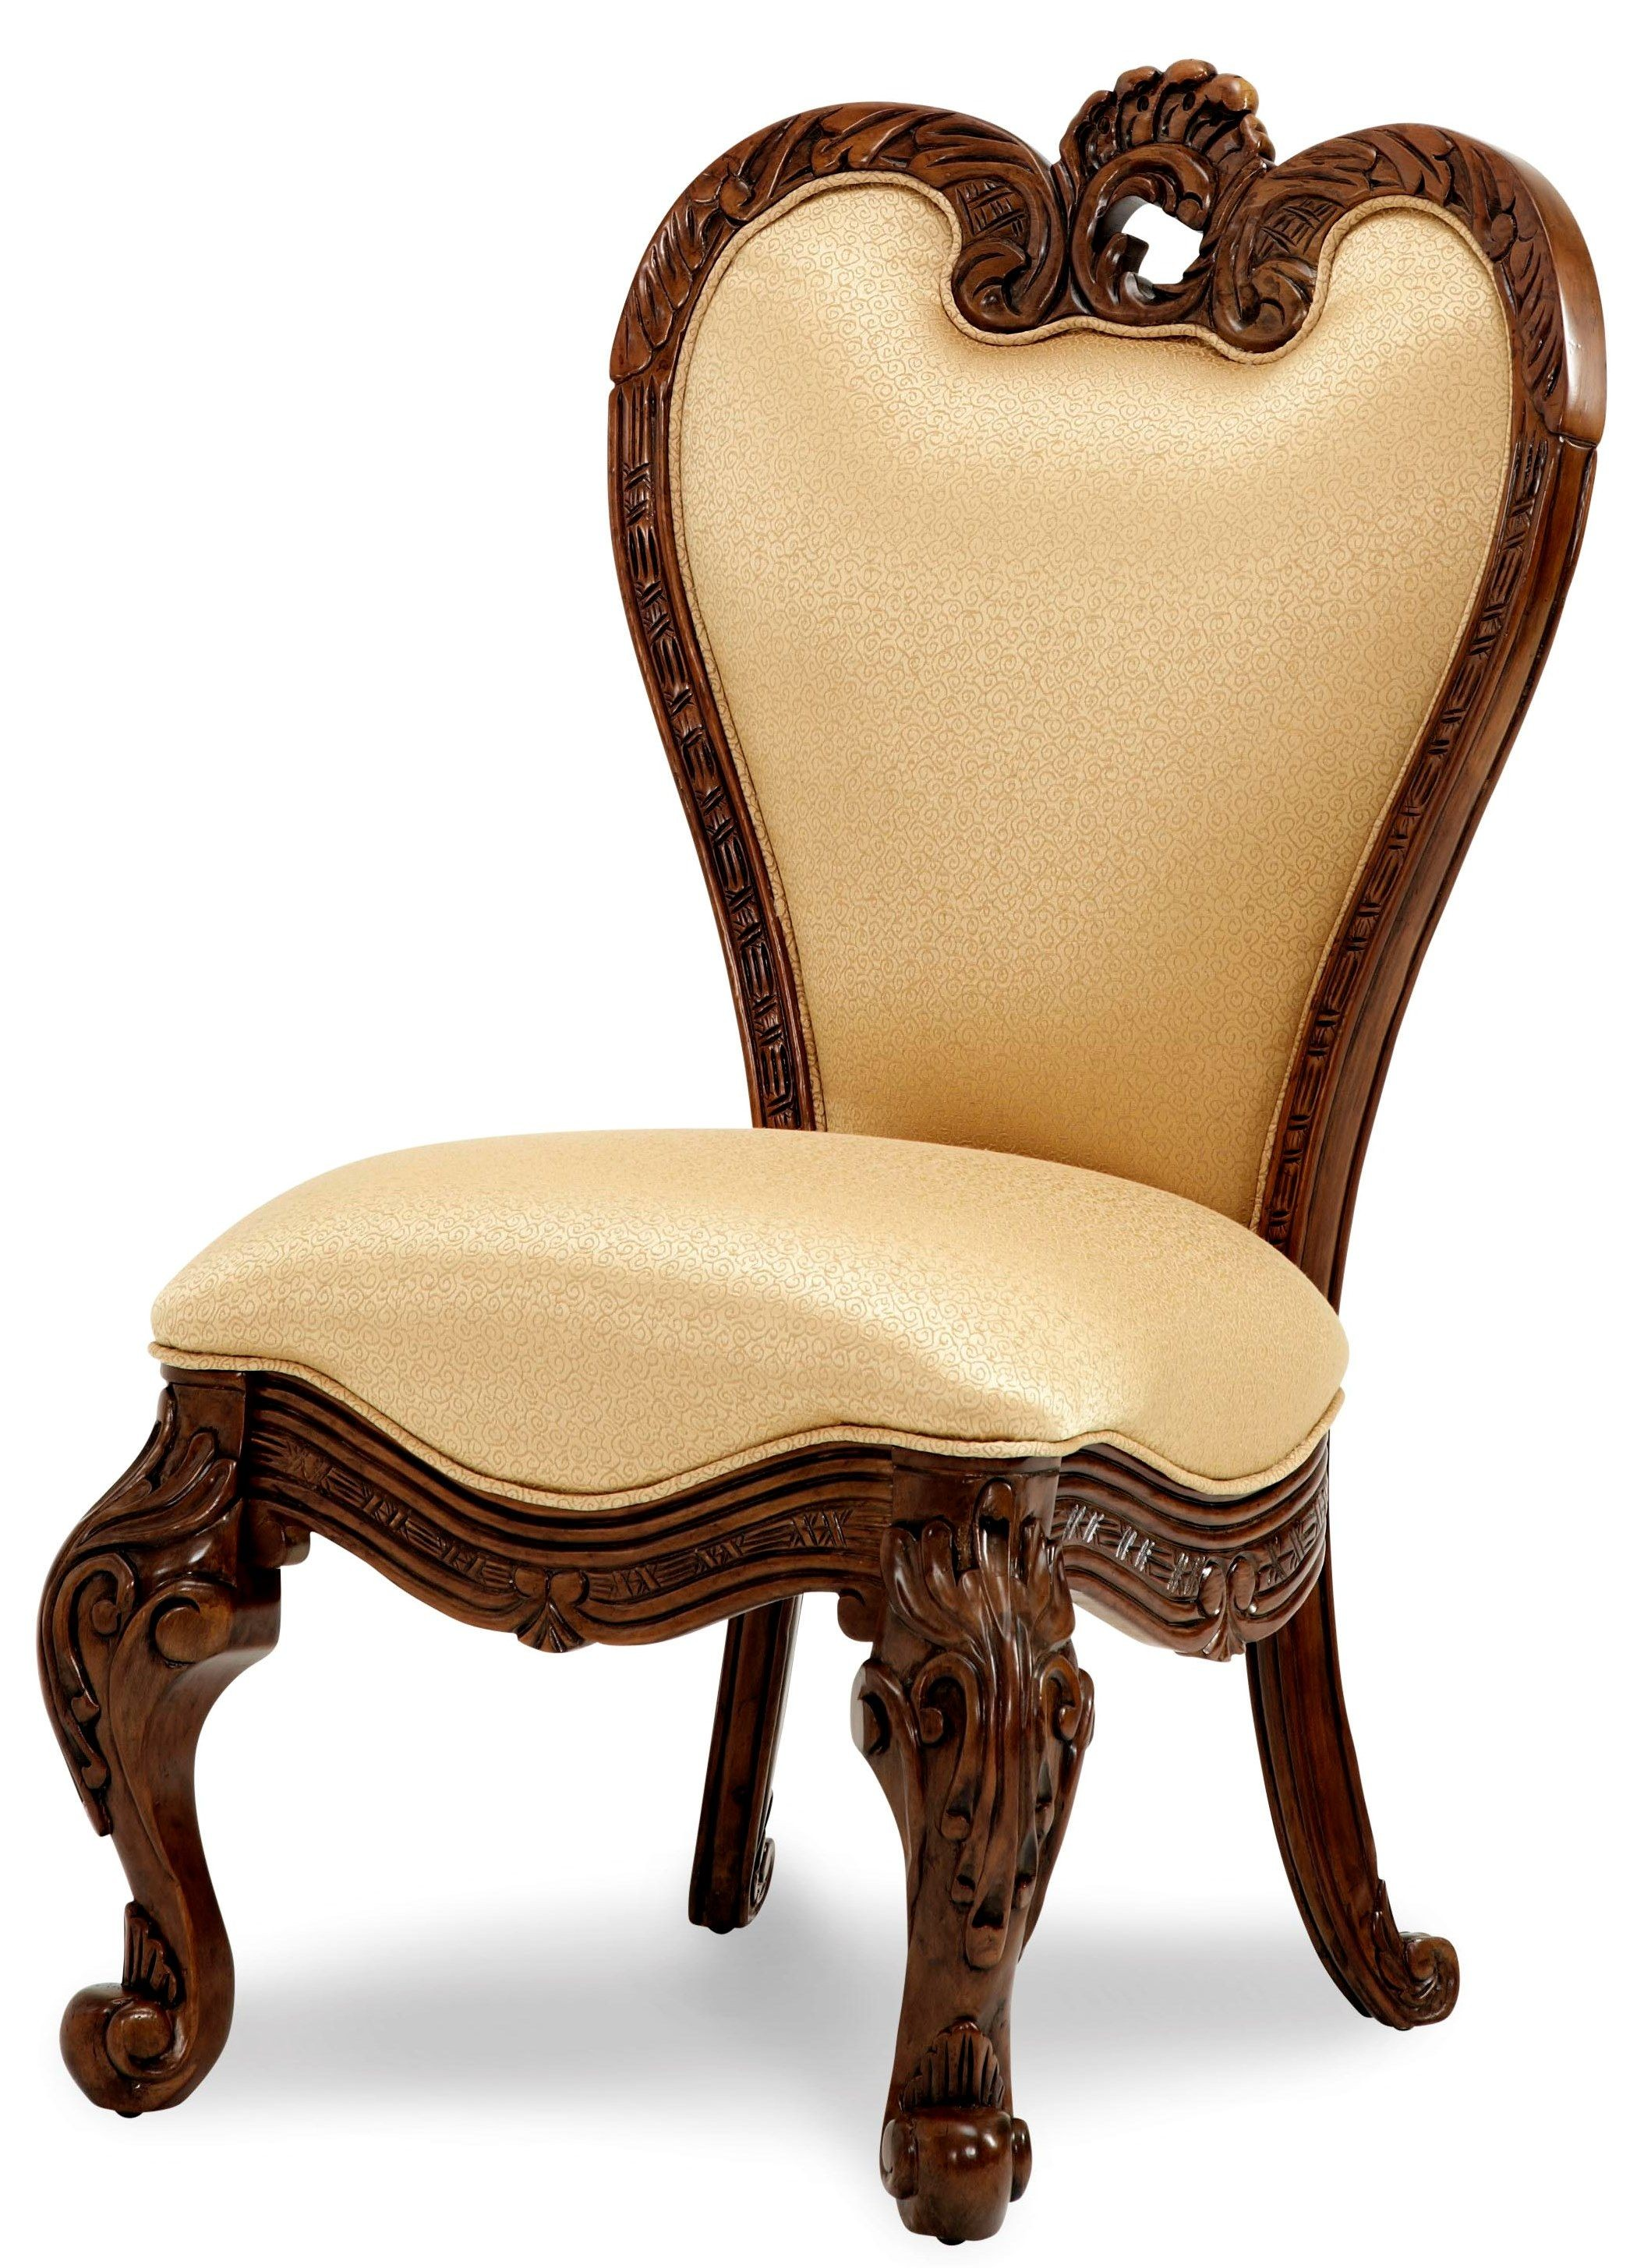 Palais Royale Vanity Chair from Aico 7104435  Coleman